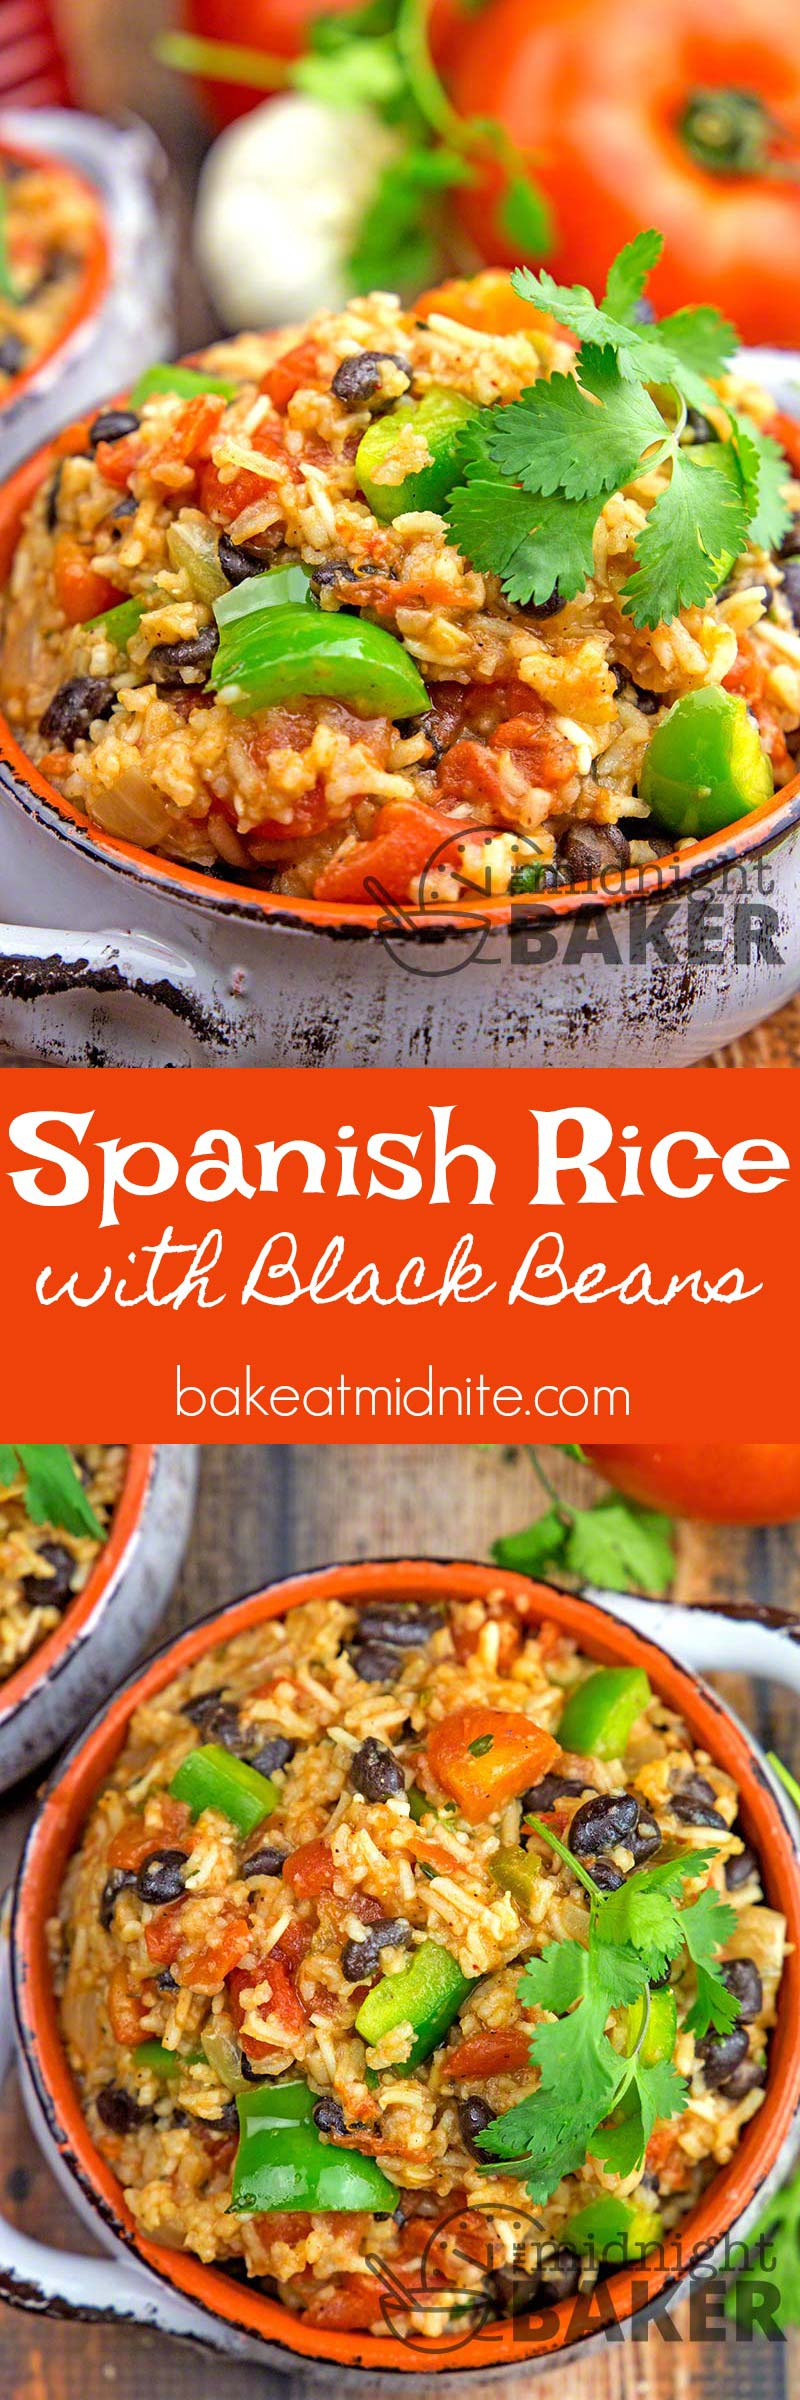 Delicious Spanish rice becomes a complete meal with the added black beans. Make it totally vegan too!